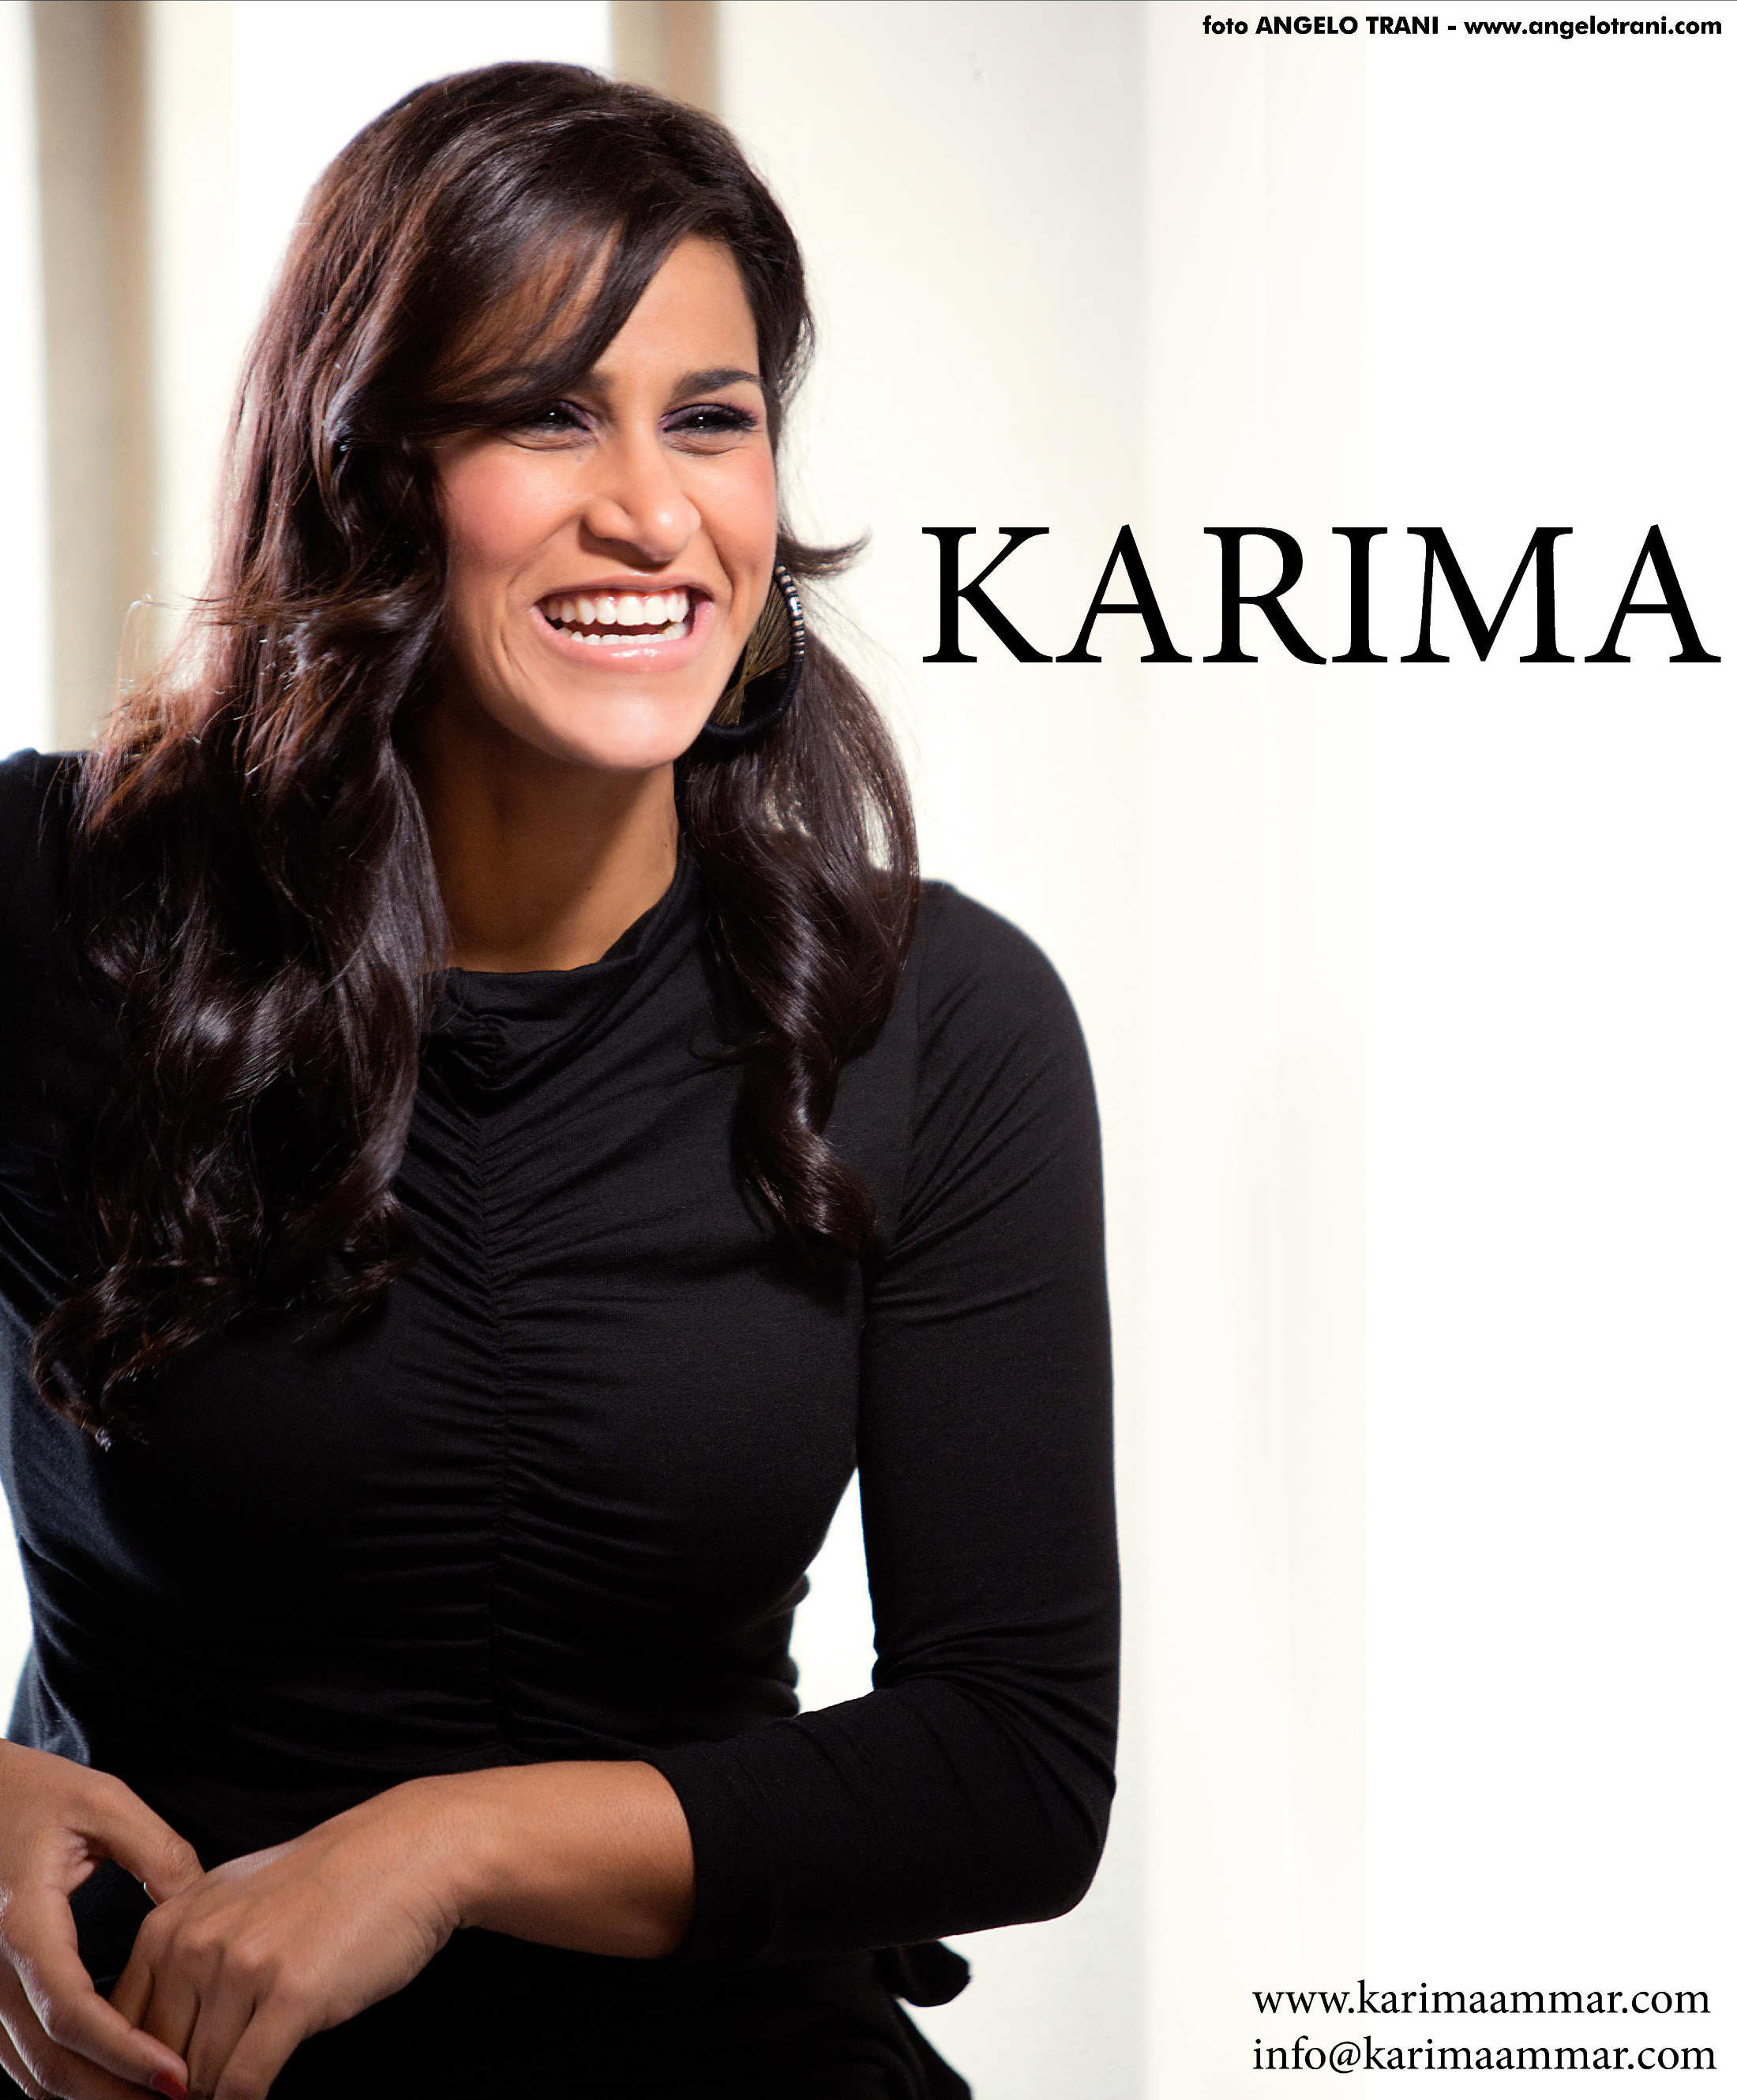 Karima – SB MANAGEMENT